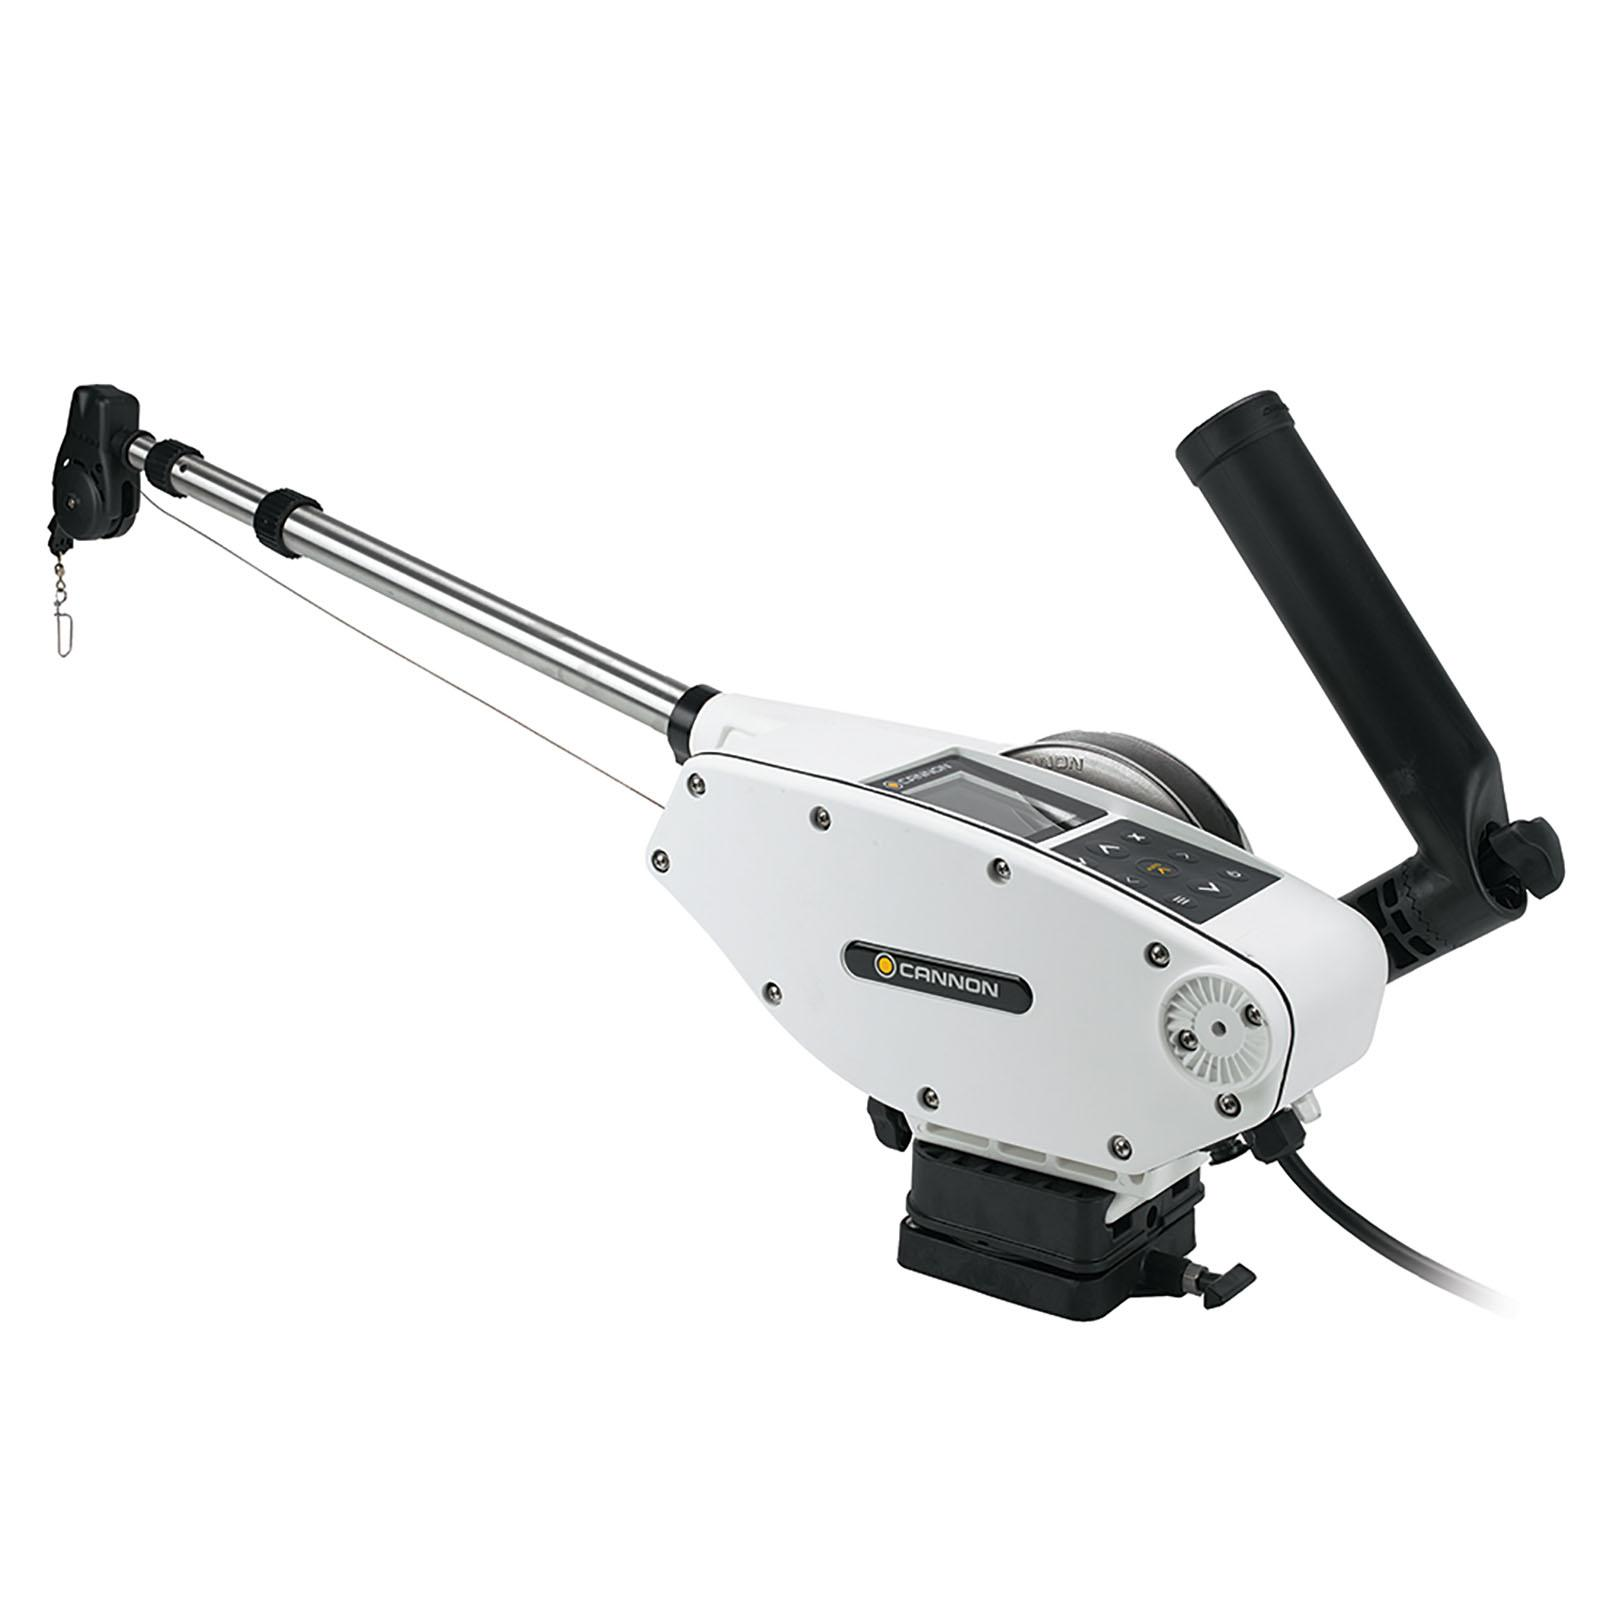 Cannon Optimum 10 Tournament Series BT Electric Downrigger Side View